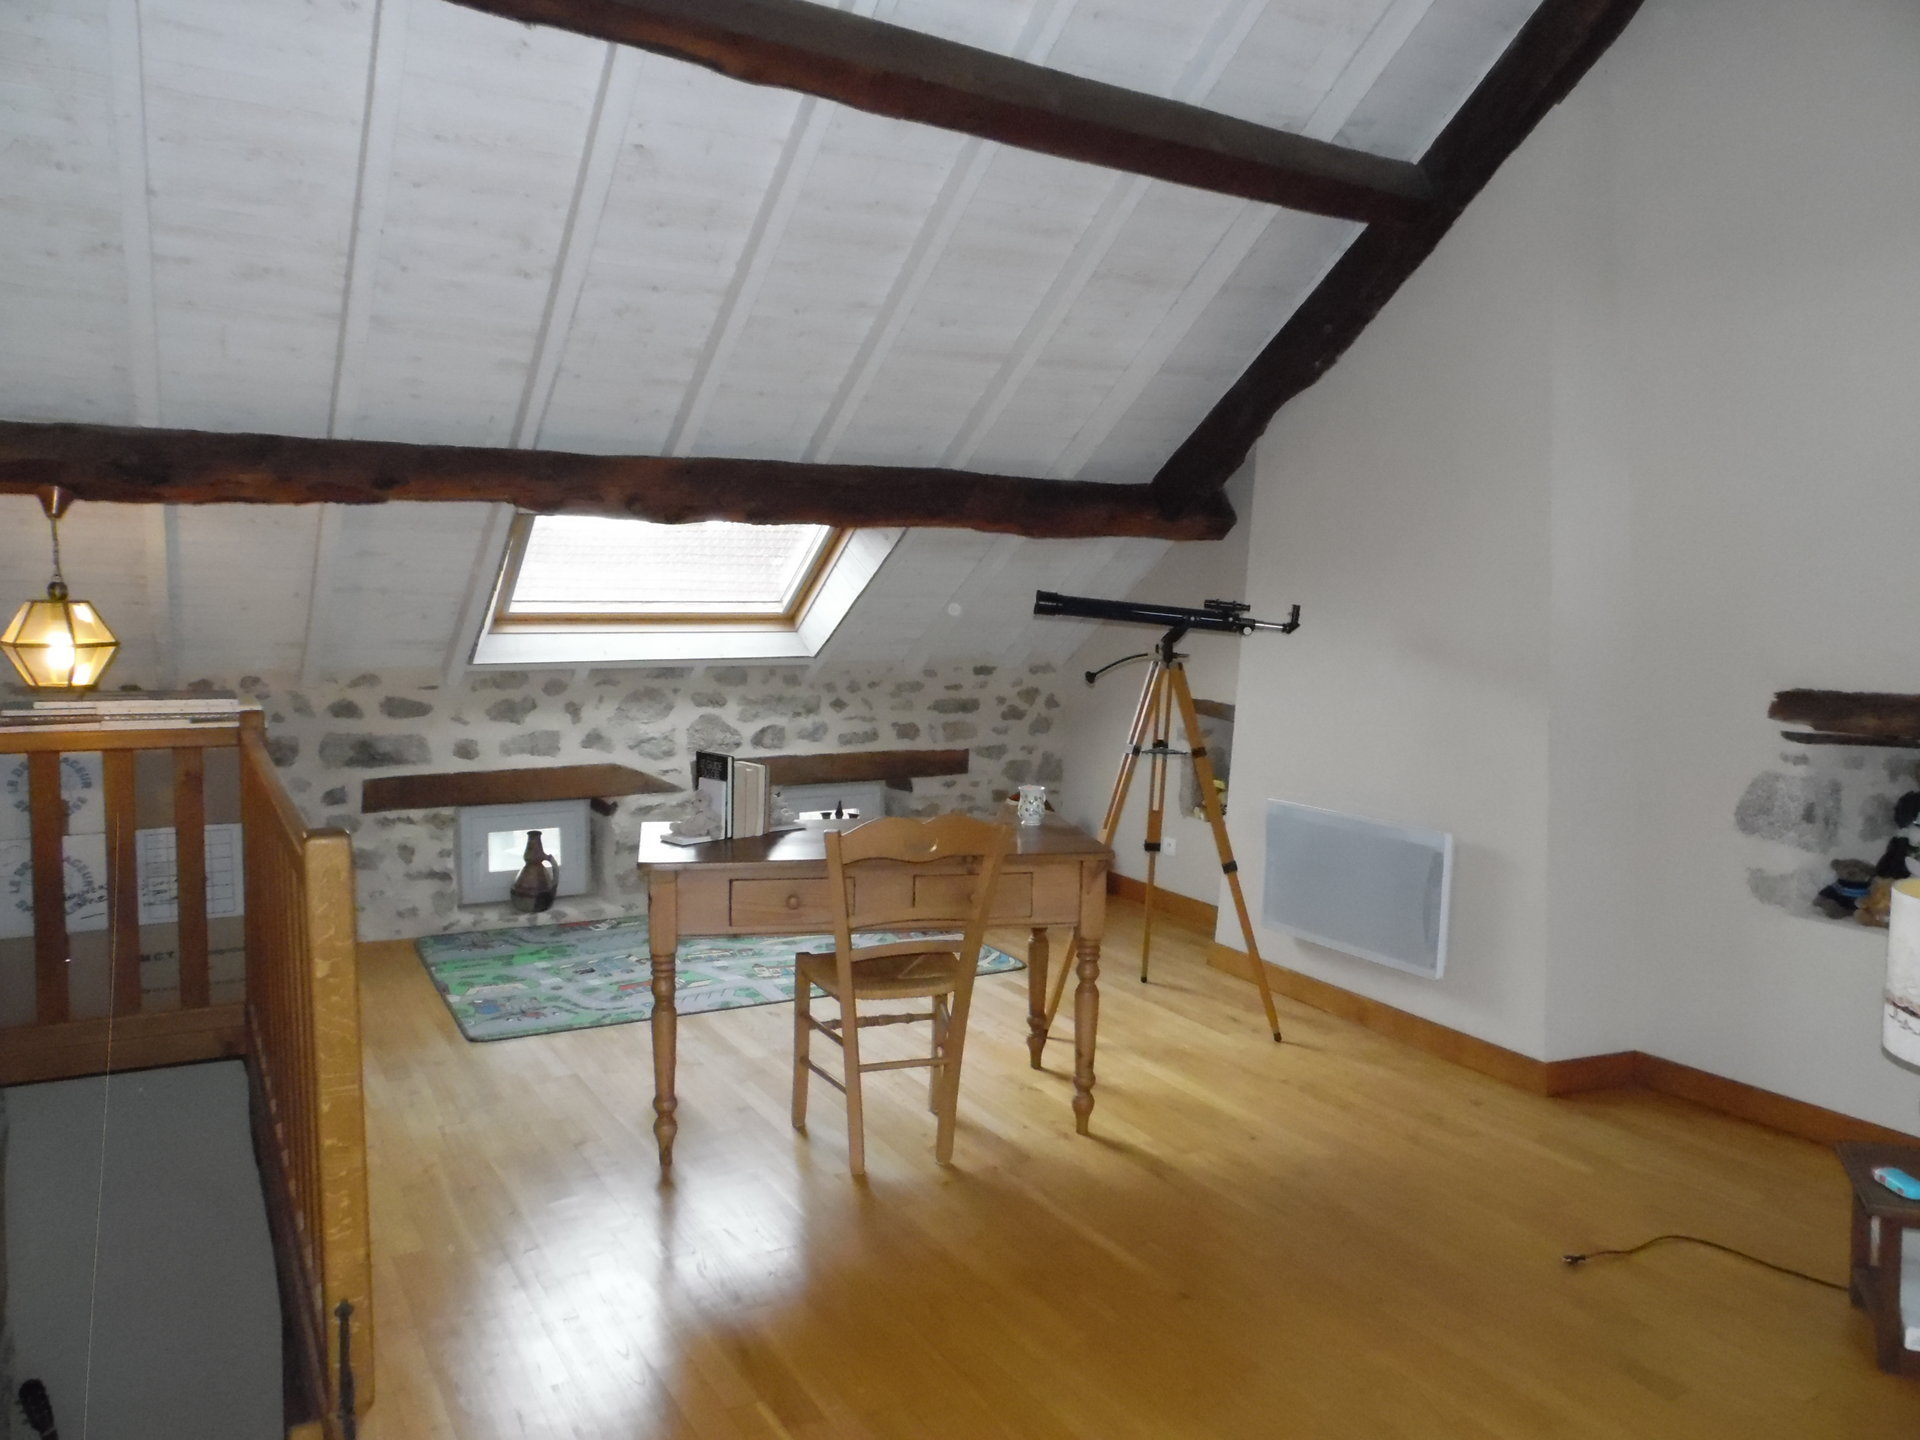 For sale in the Creuse, House, barn, woodland and garden.